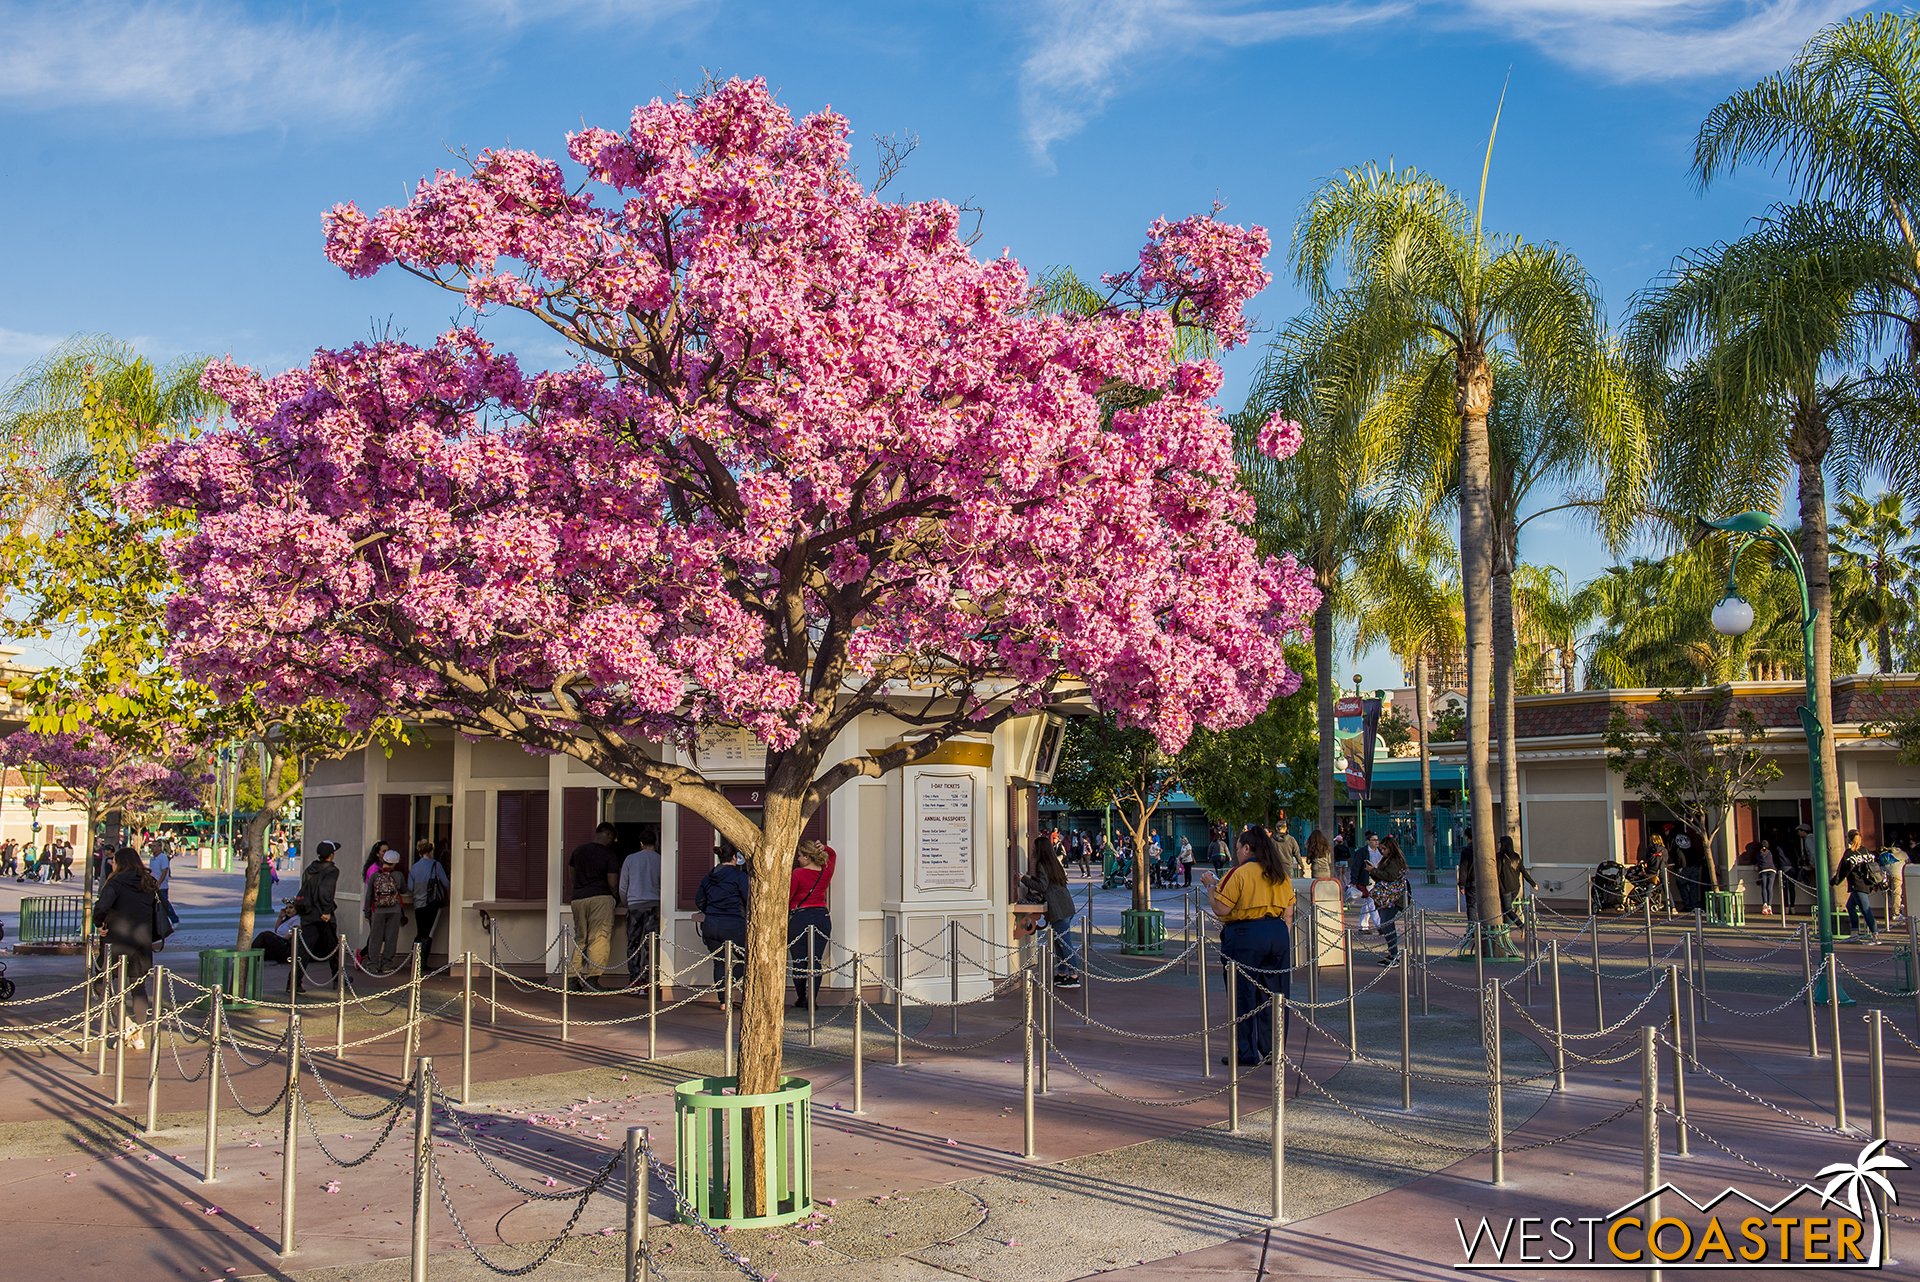 Springtime at the Disneyland Resort means pink takes over everywhere.